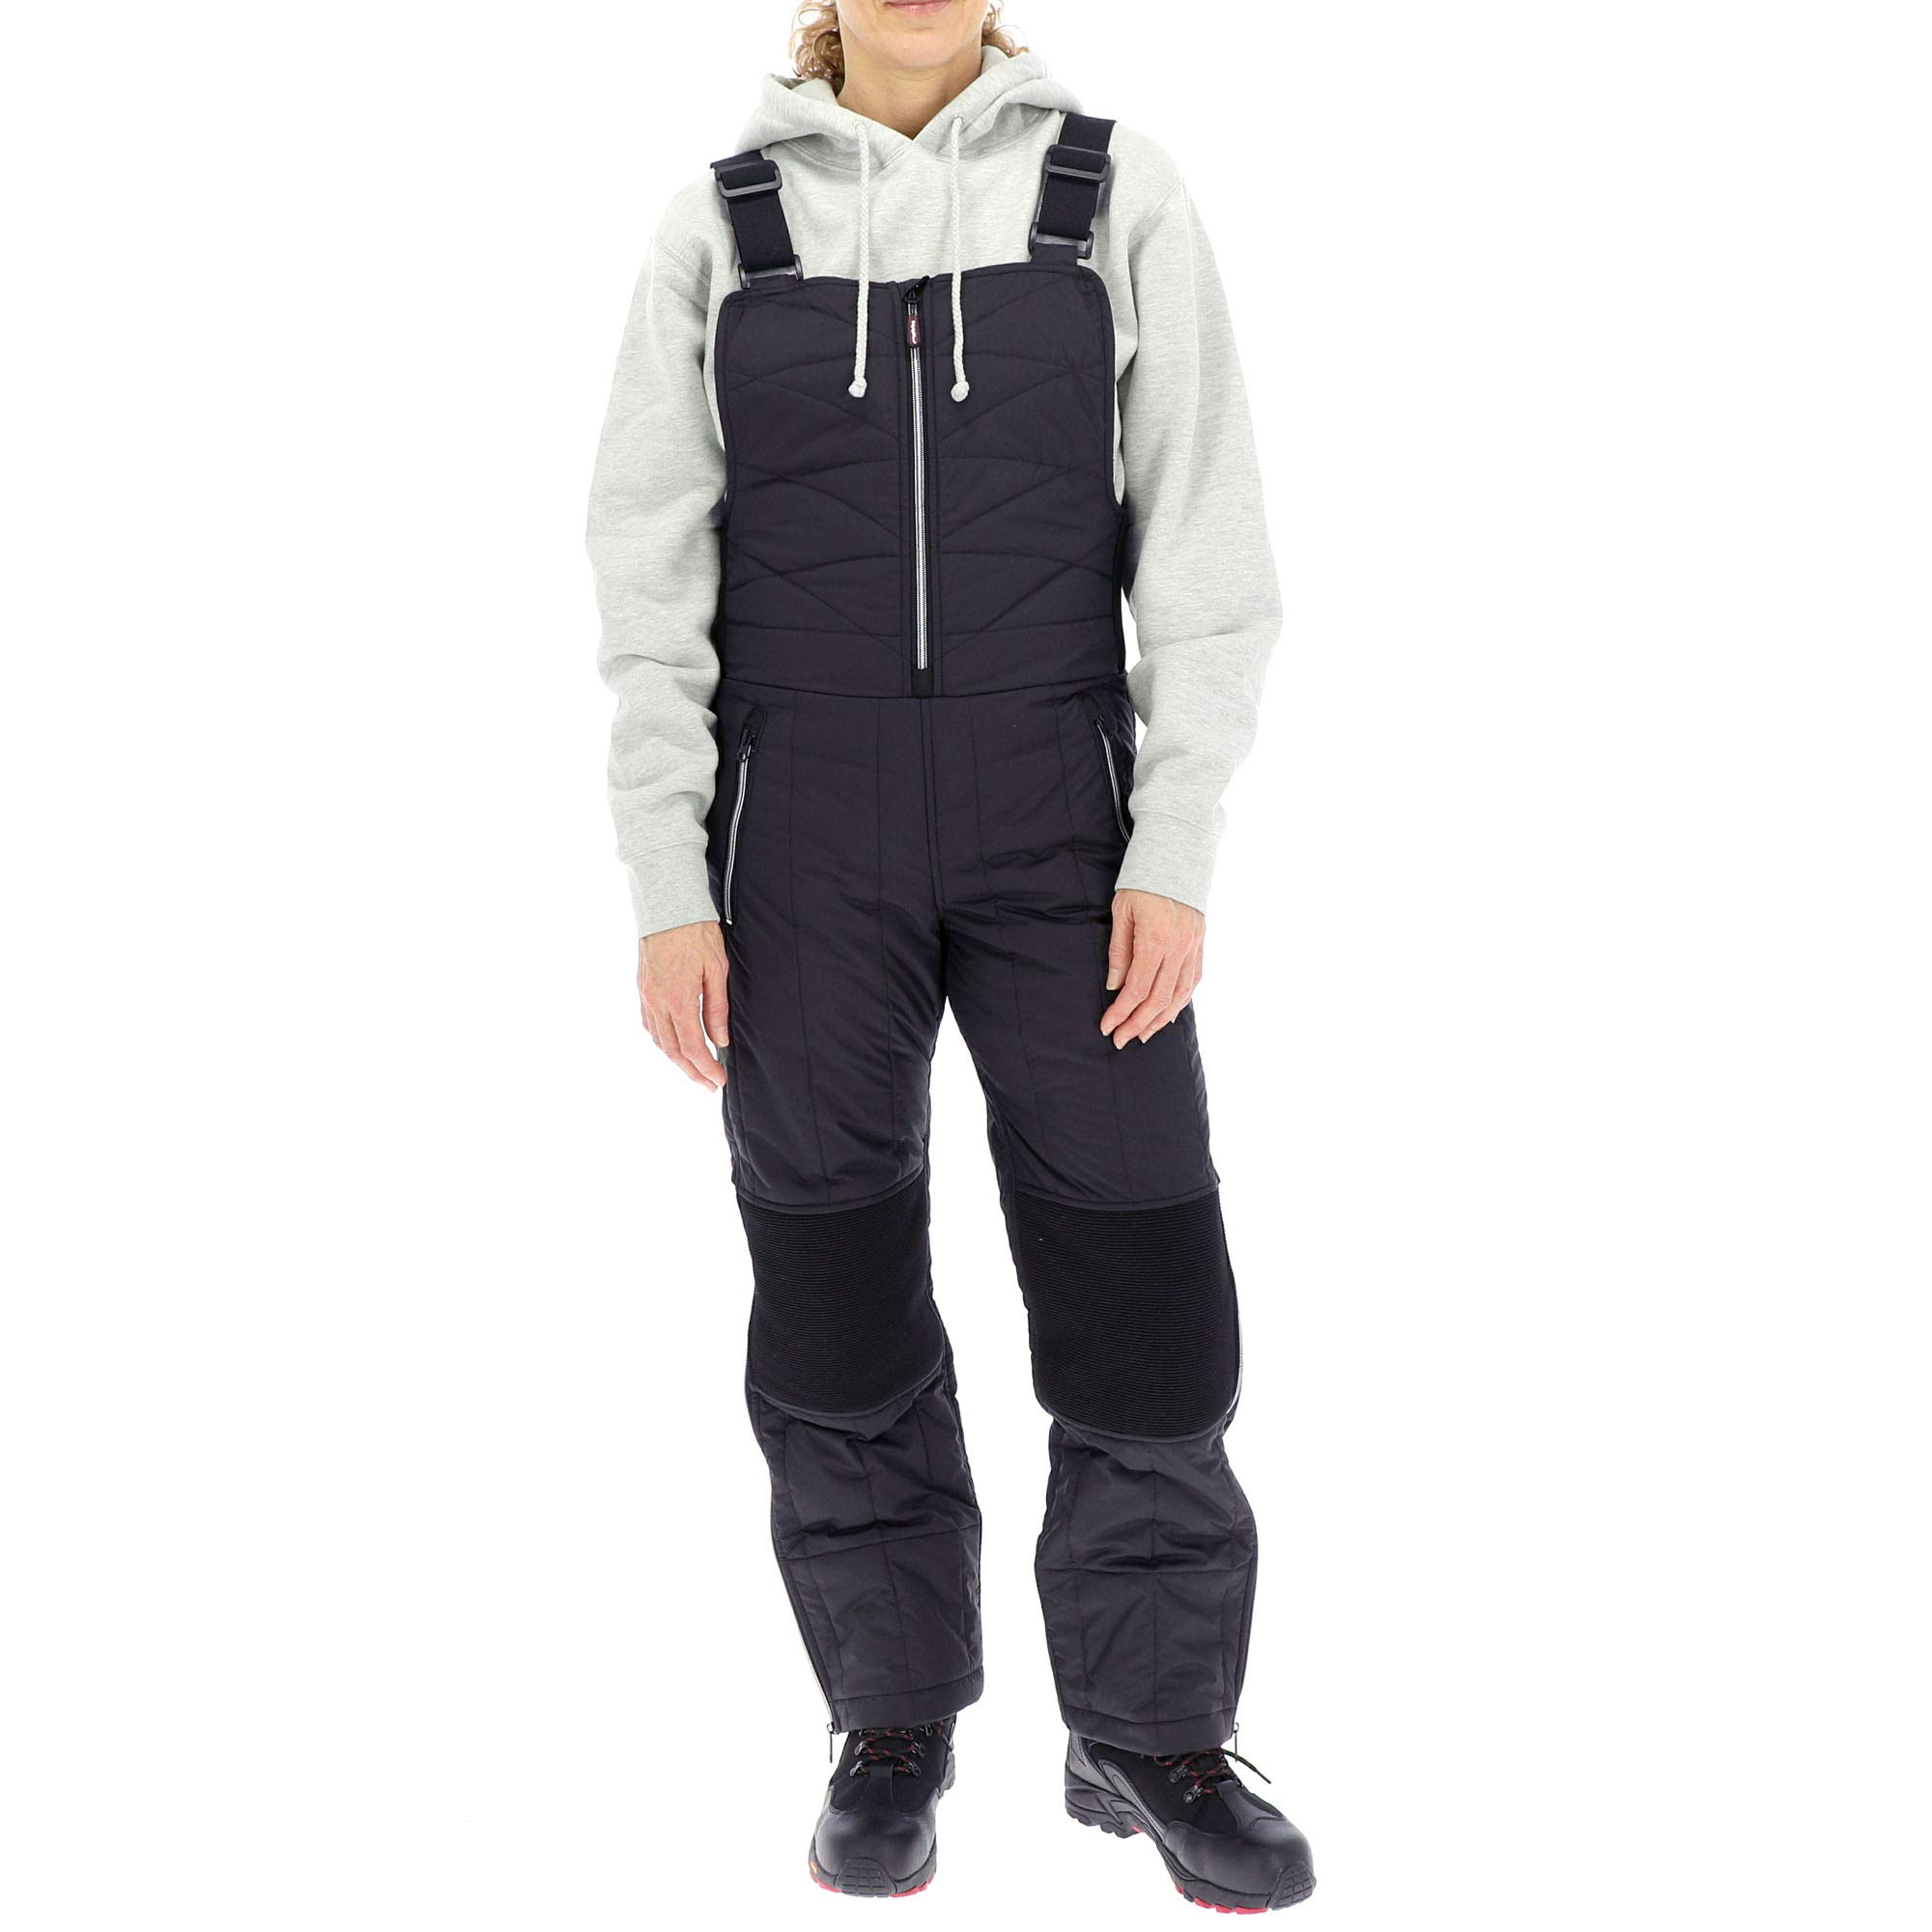 RefrigiWear Women's Diamond Quilted Insulated Bib Overalls with Performance-Flex